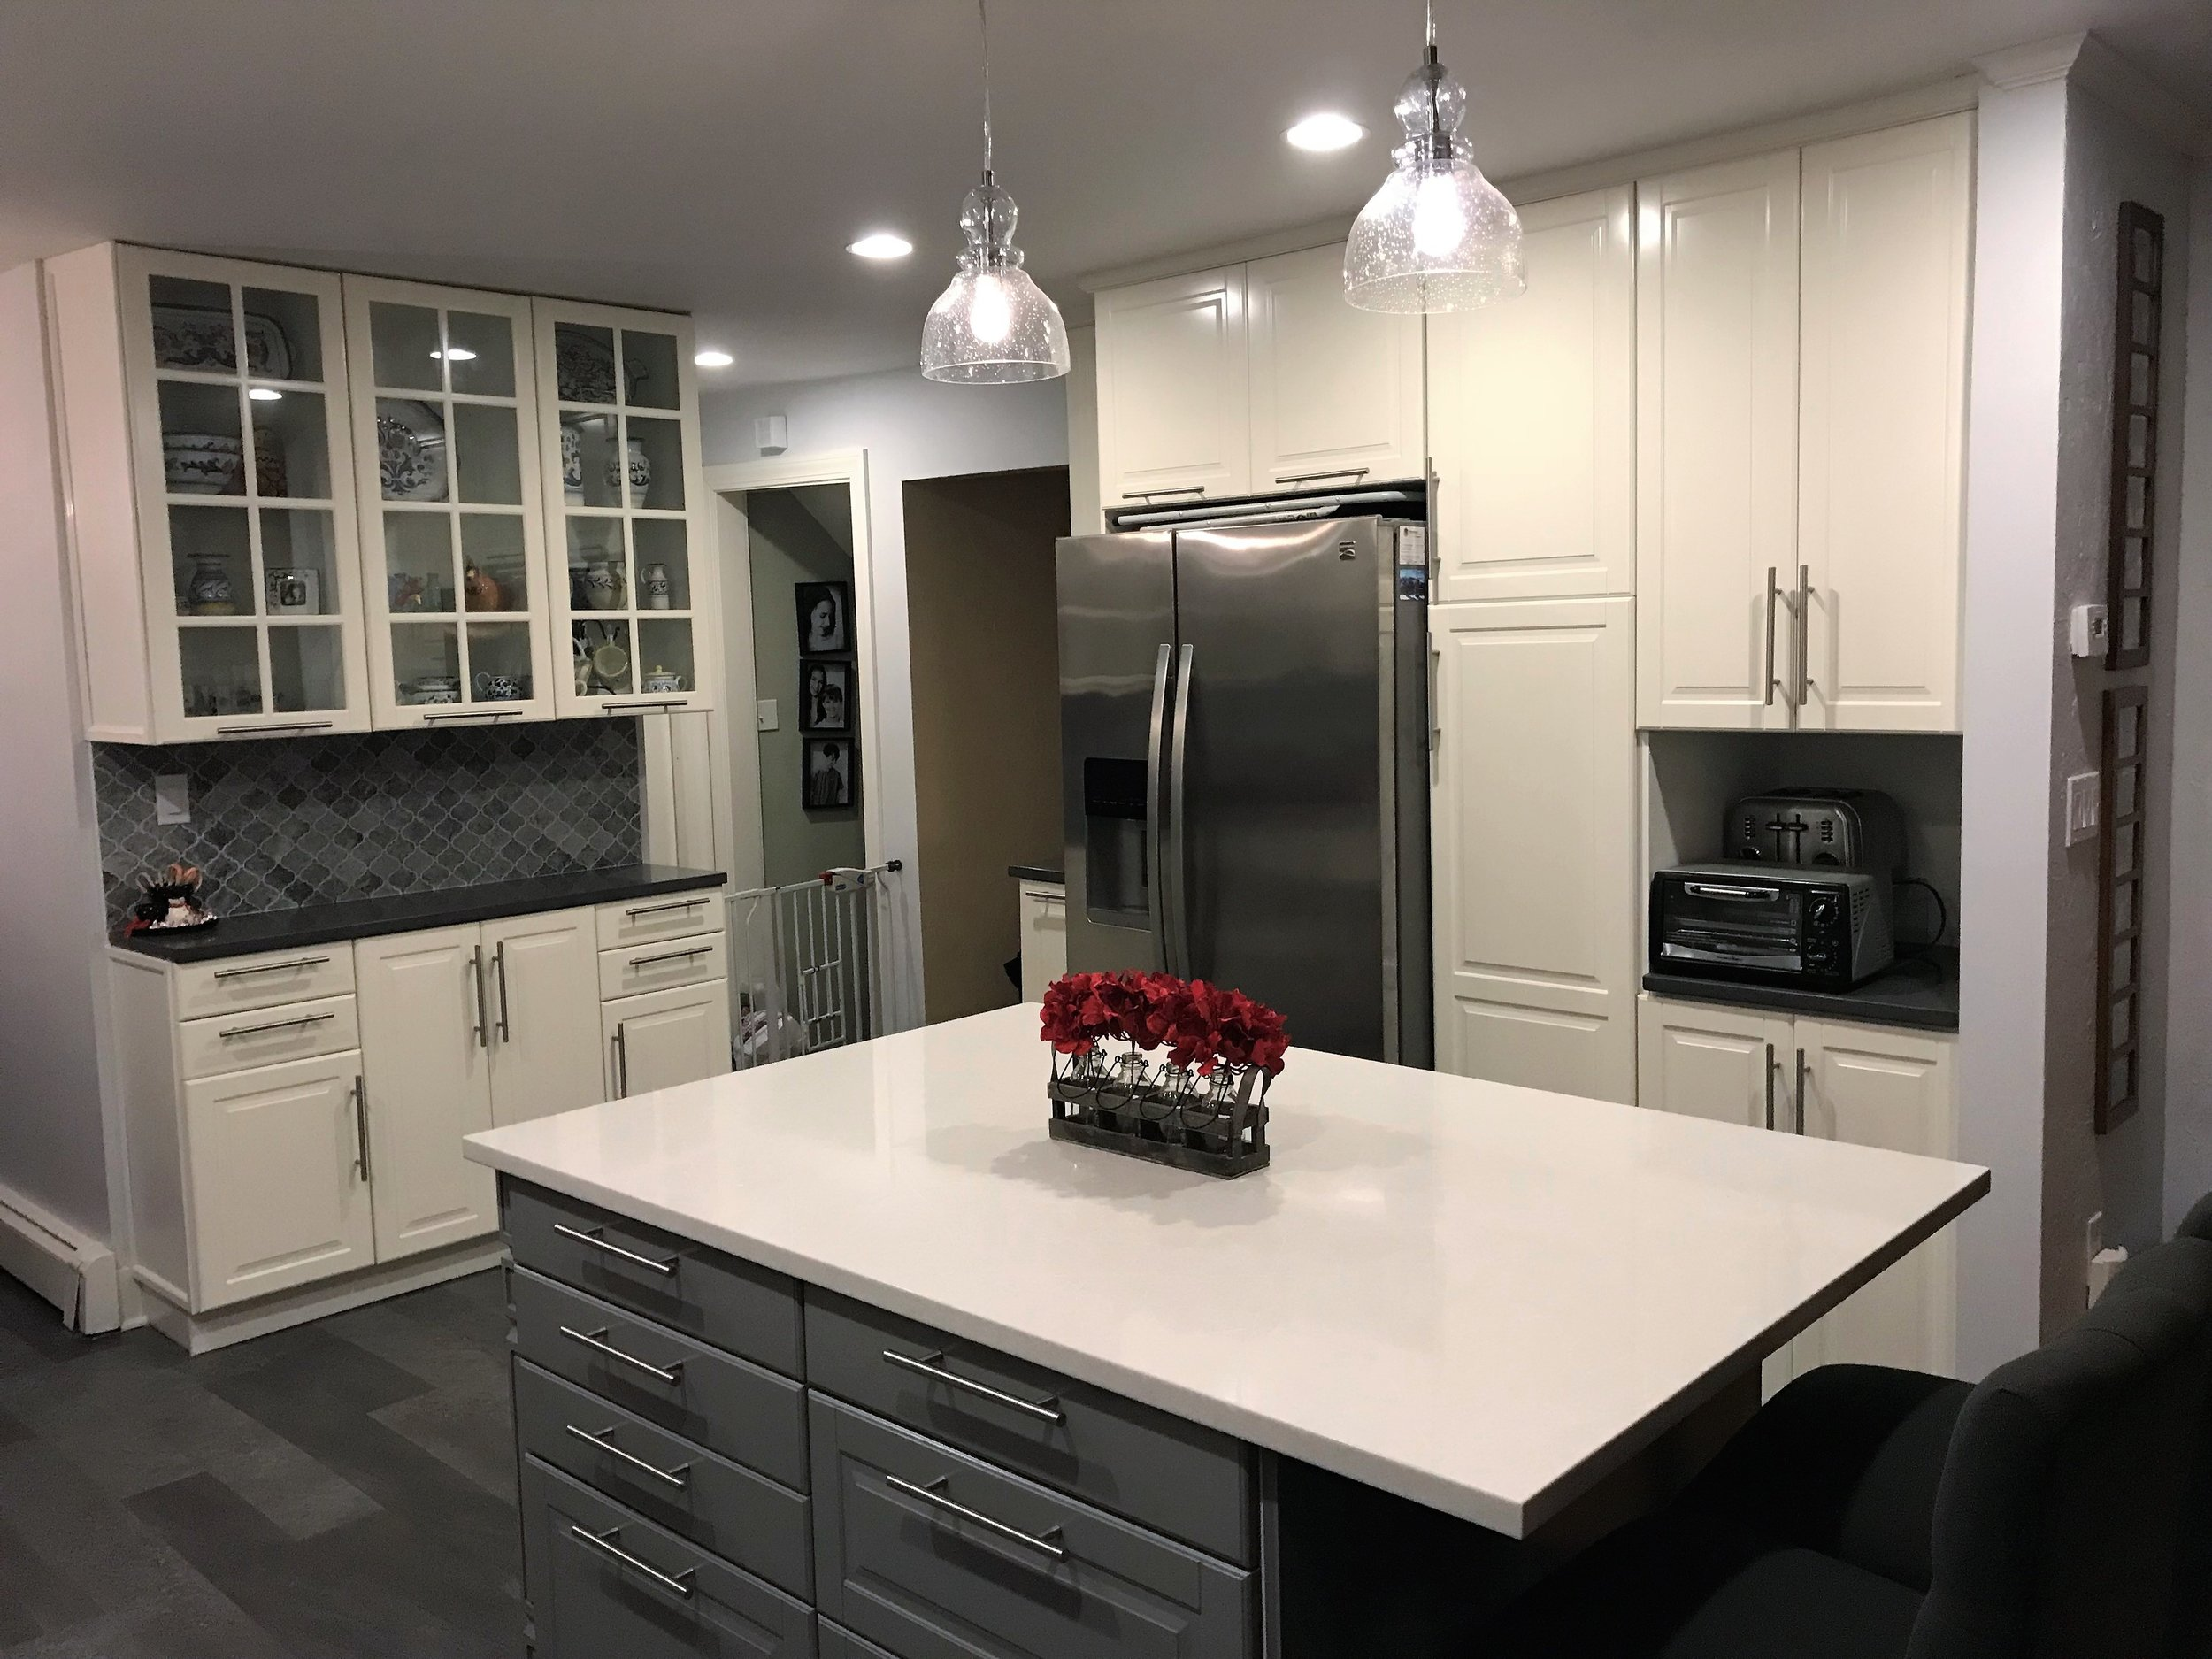 Shaw Remodeling - Kitchen Remodel in Old Lyme CT